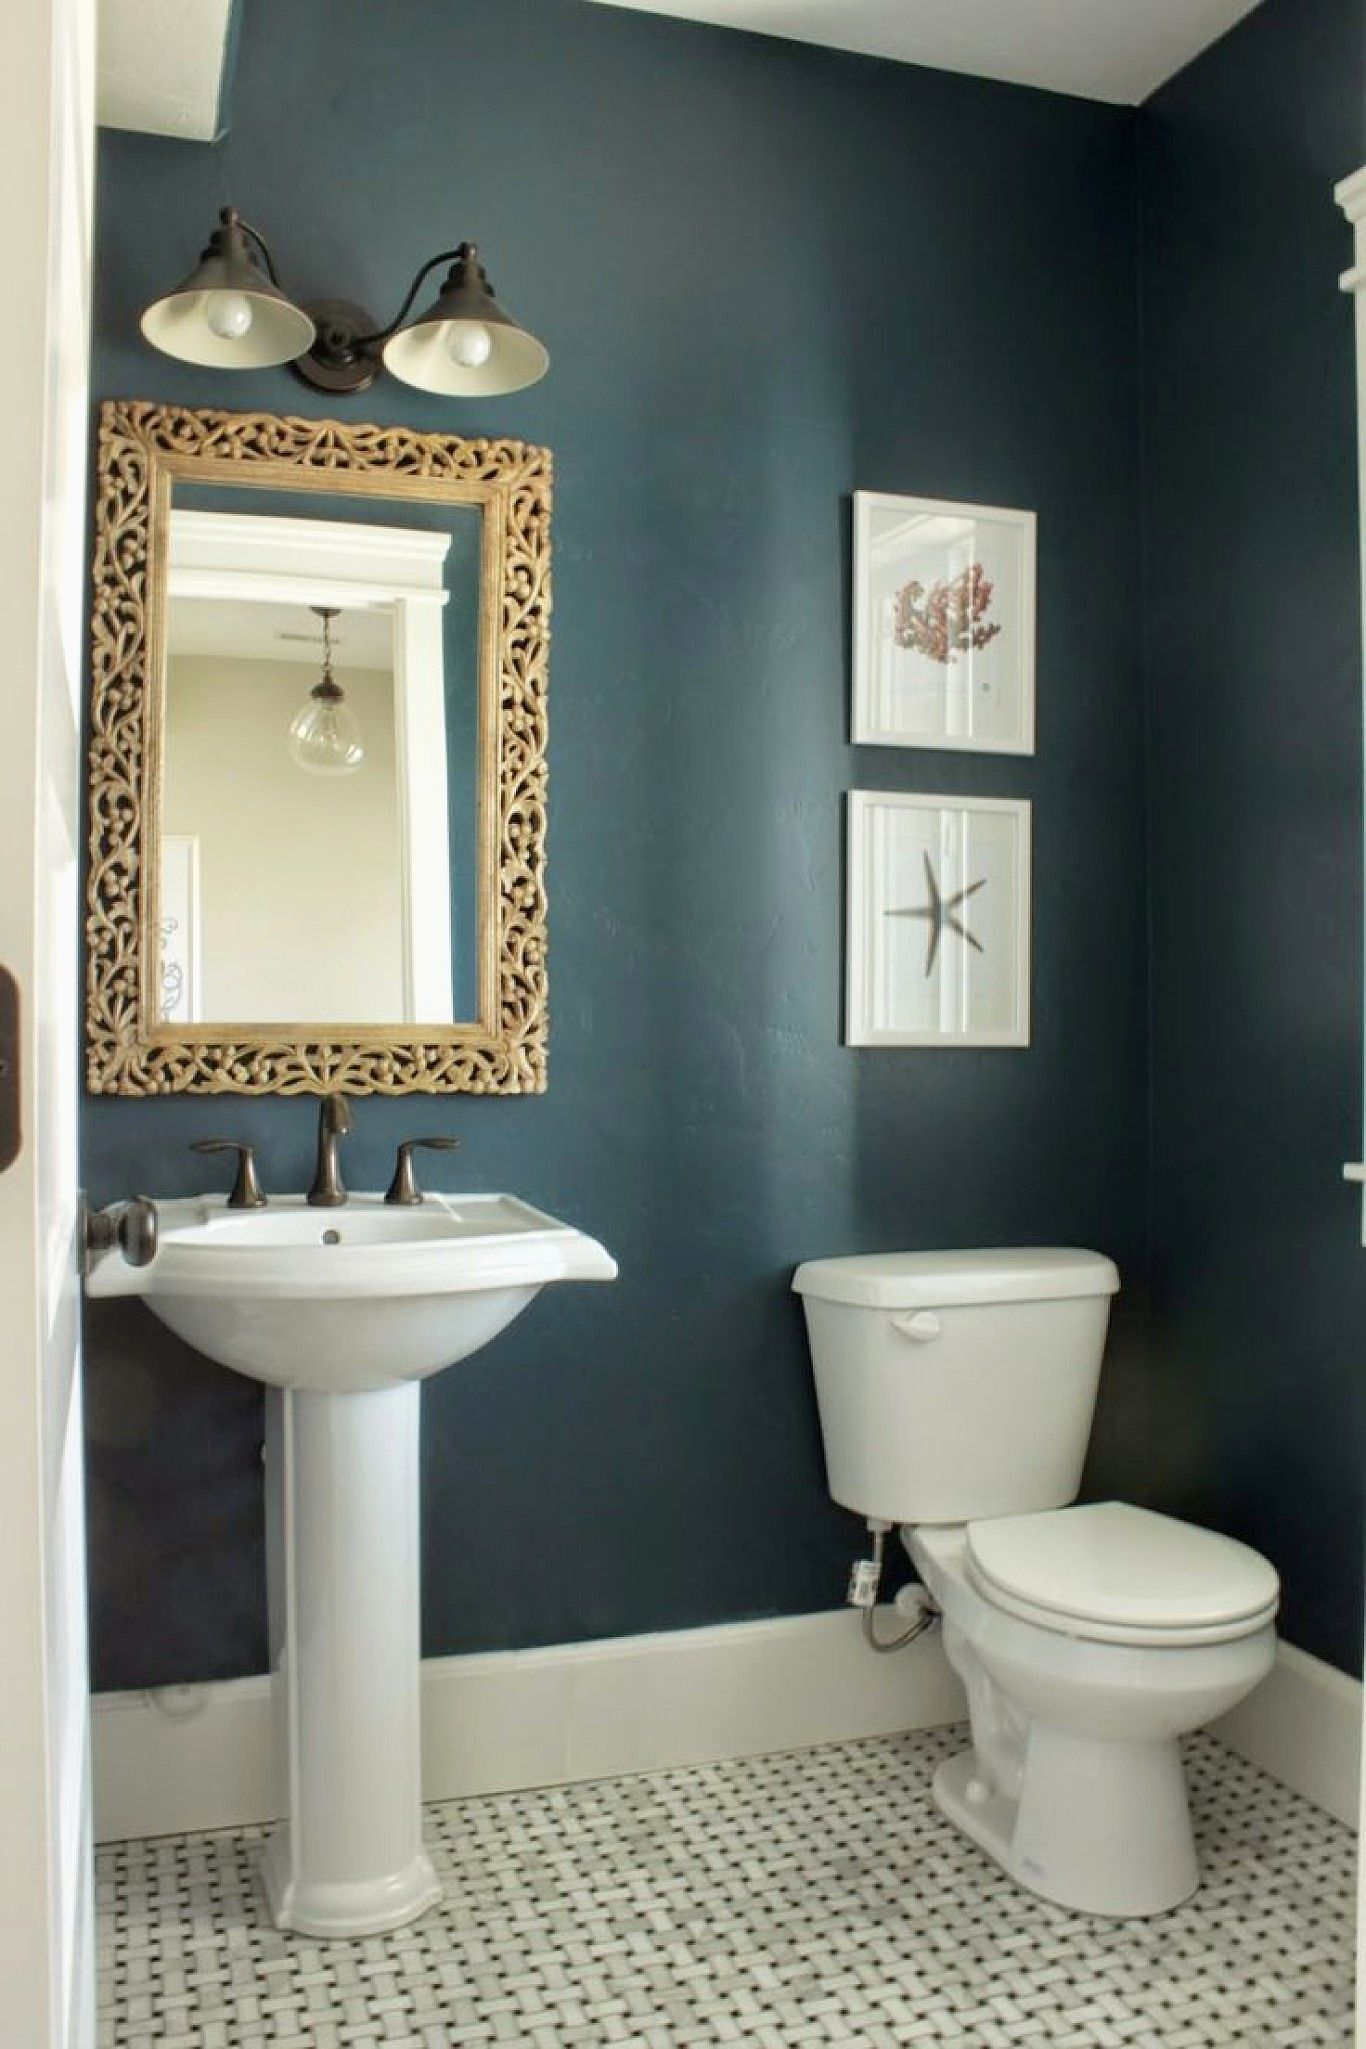 Small Bathroom Paint Color Ideas in 2020 | Small bathroom ...